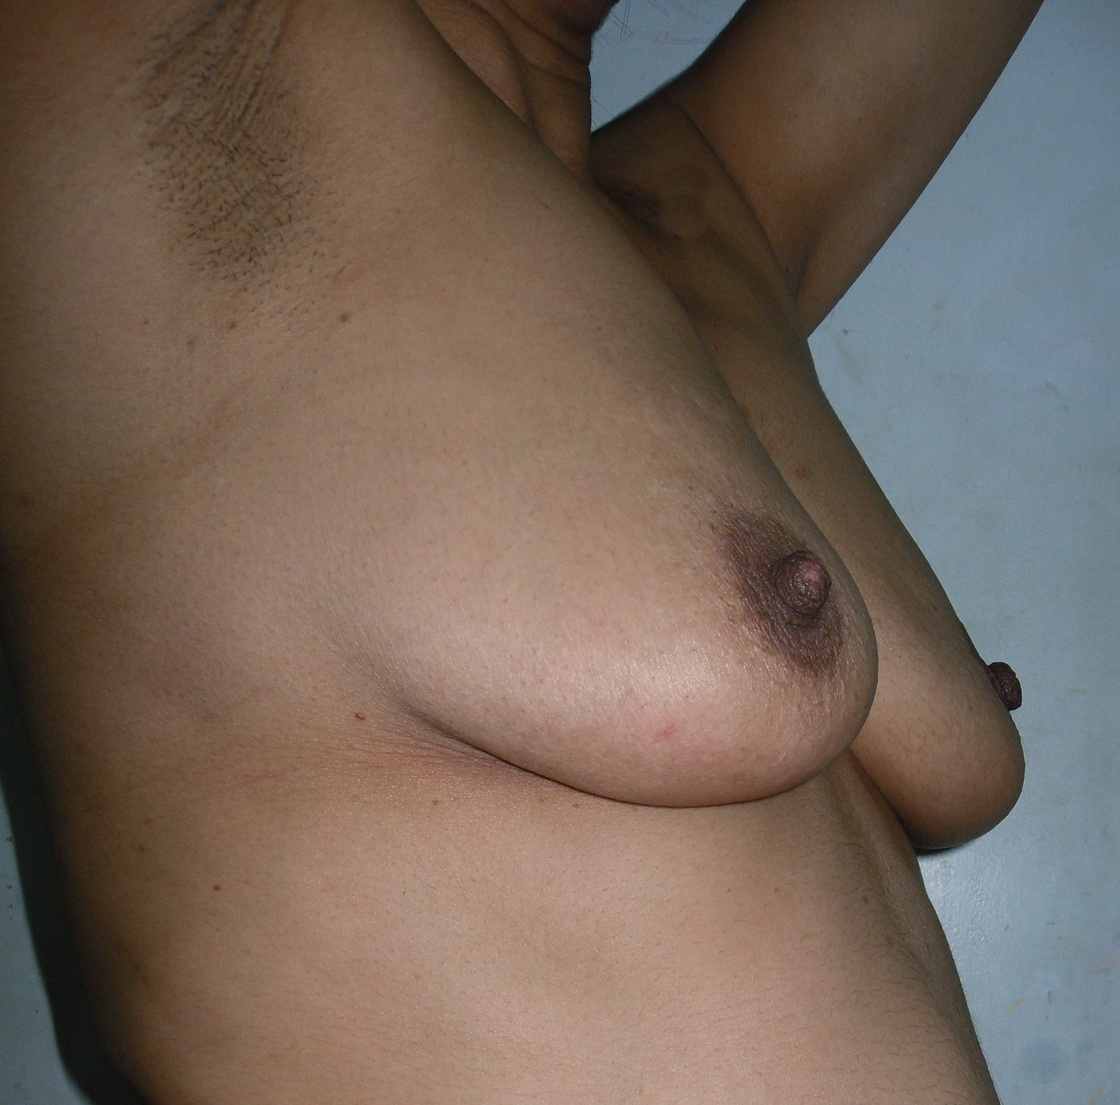 Mature Indian Girlfriends Nice Tits Pics - Real Indian Gfs-8998